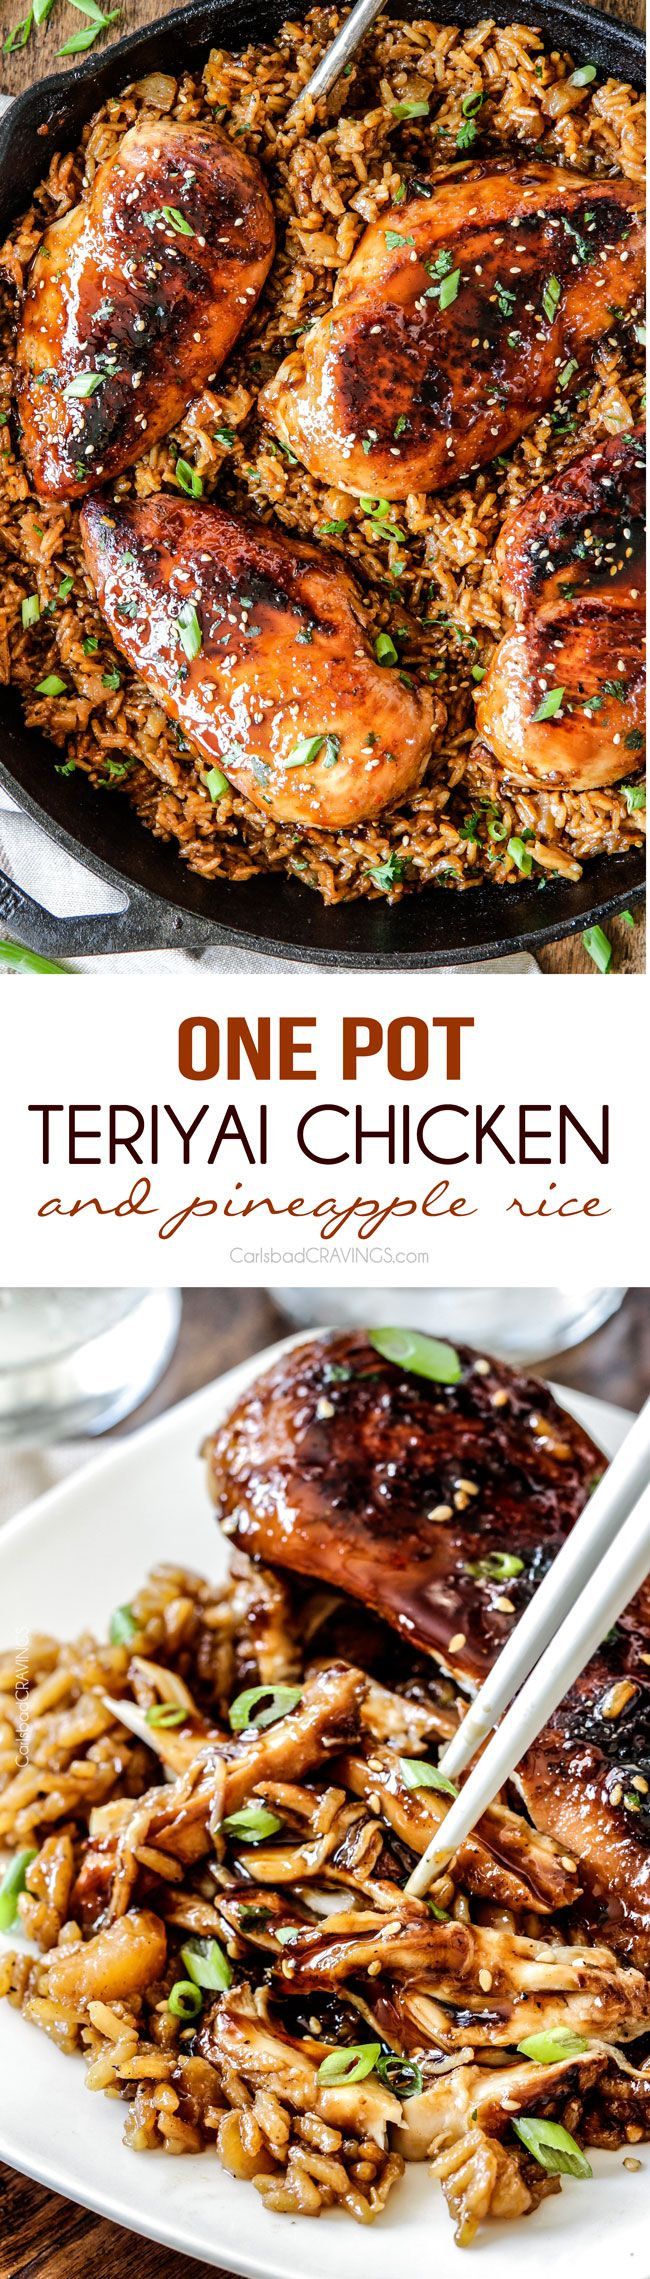 Easy One Pot Teriyaki Chicken with Pineapple Rice